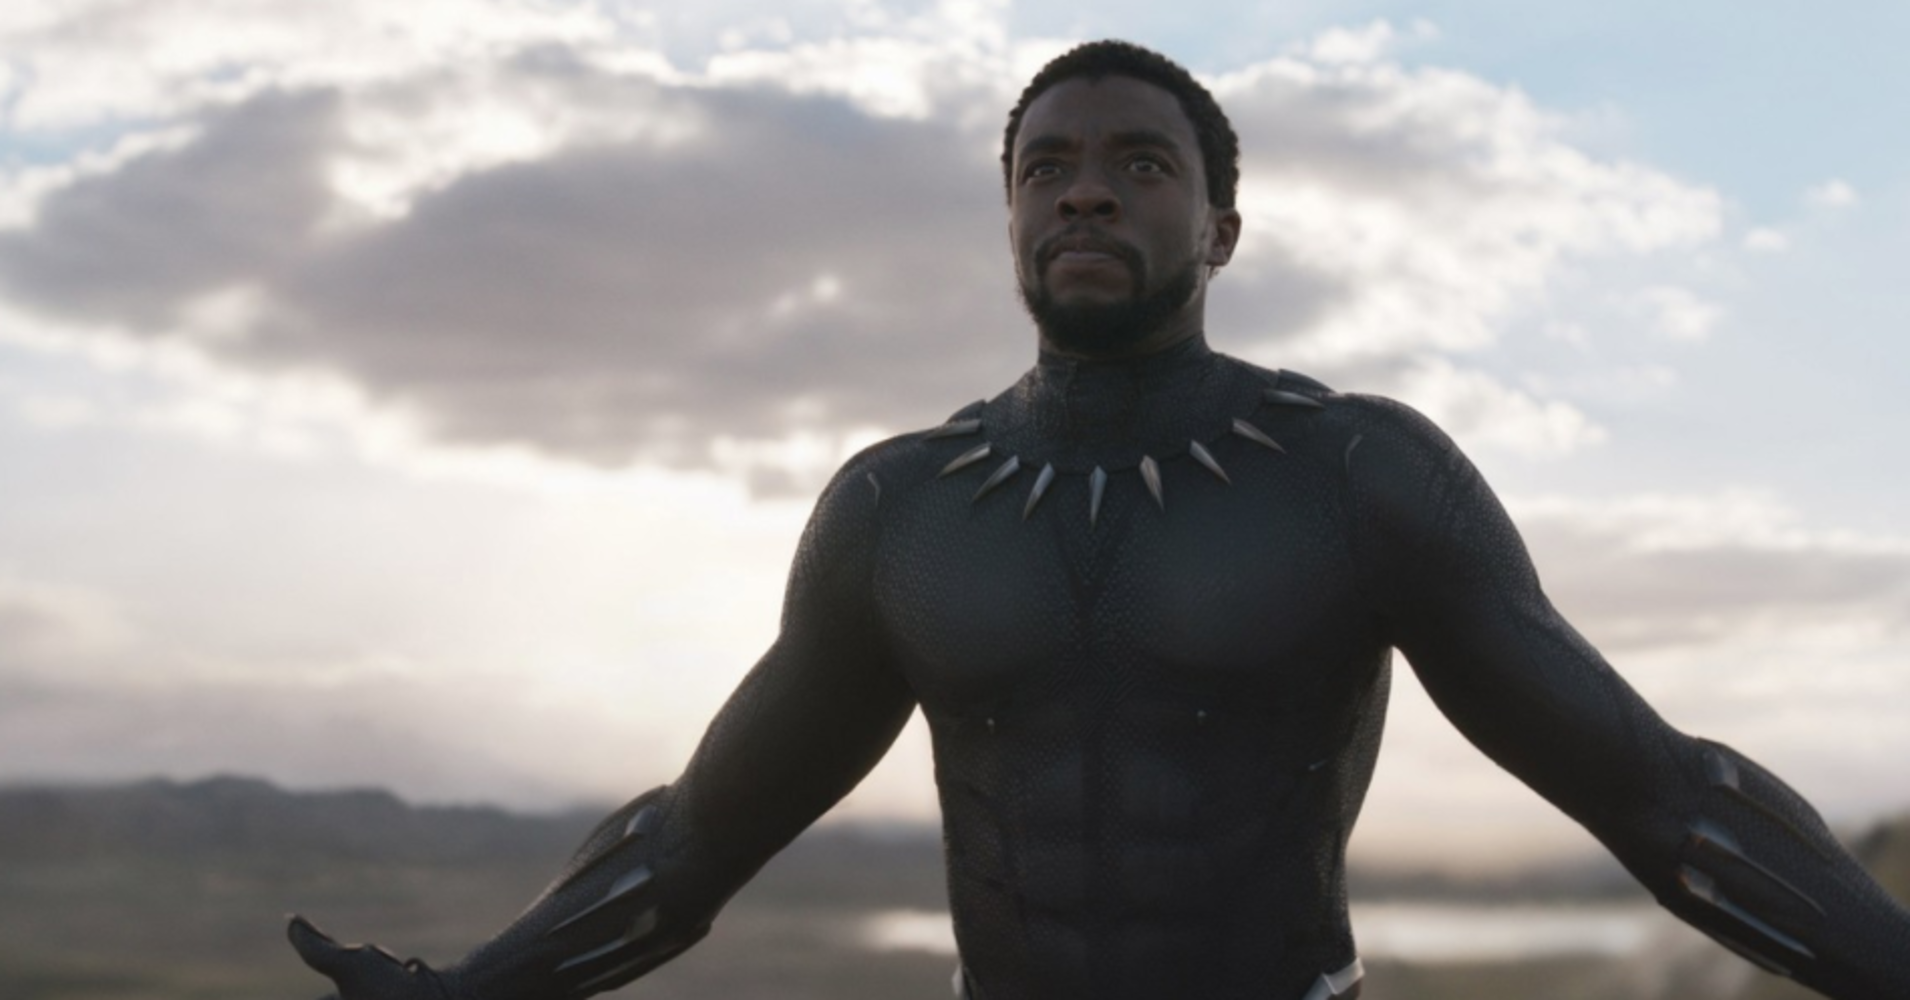 'Black Panther' Sequel Officially Confirmed By Marvel Studios Head